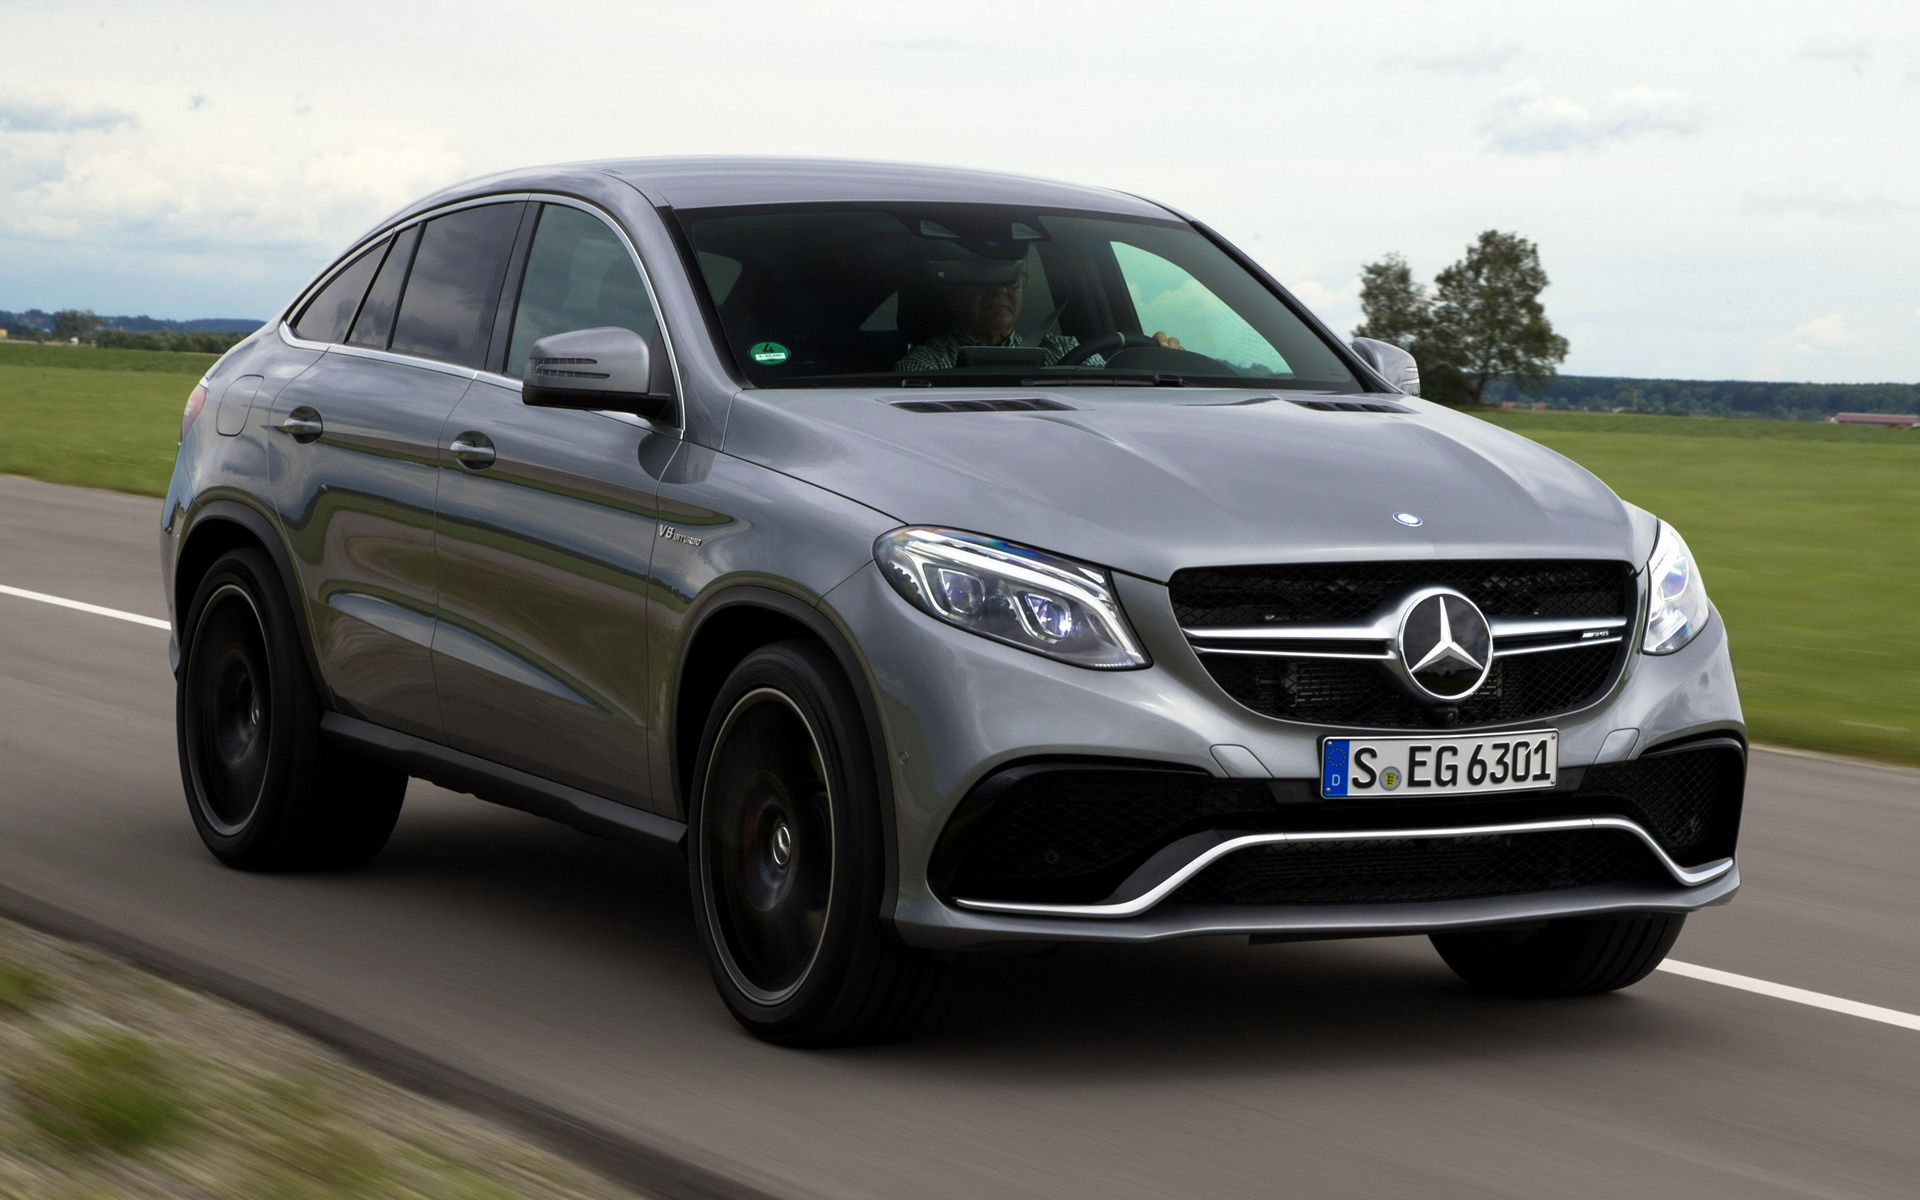 Mercedes Benz Gle Coupe >> 2015 Mercedes-AMG GLE 63 S Coupe - Wallpapers and HD ...